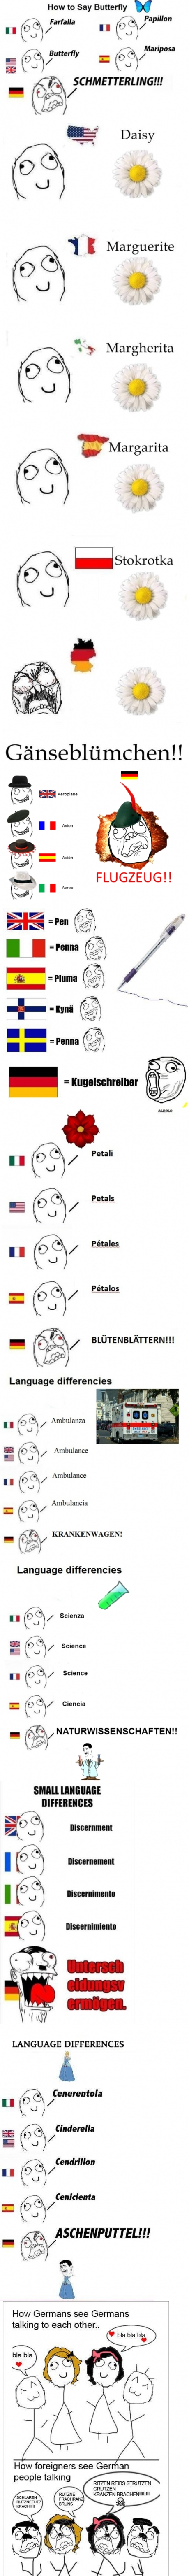 german talk